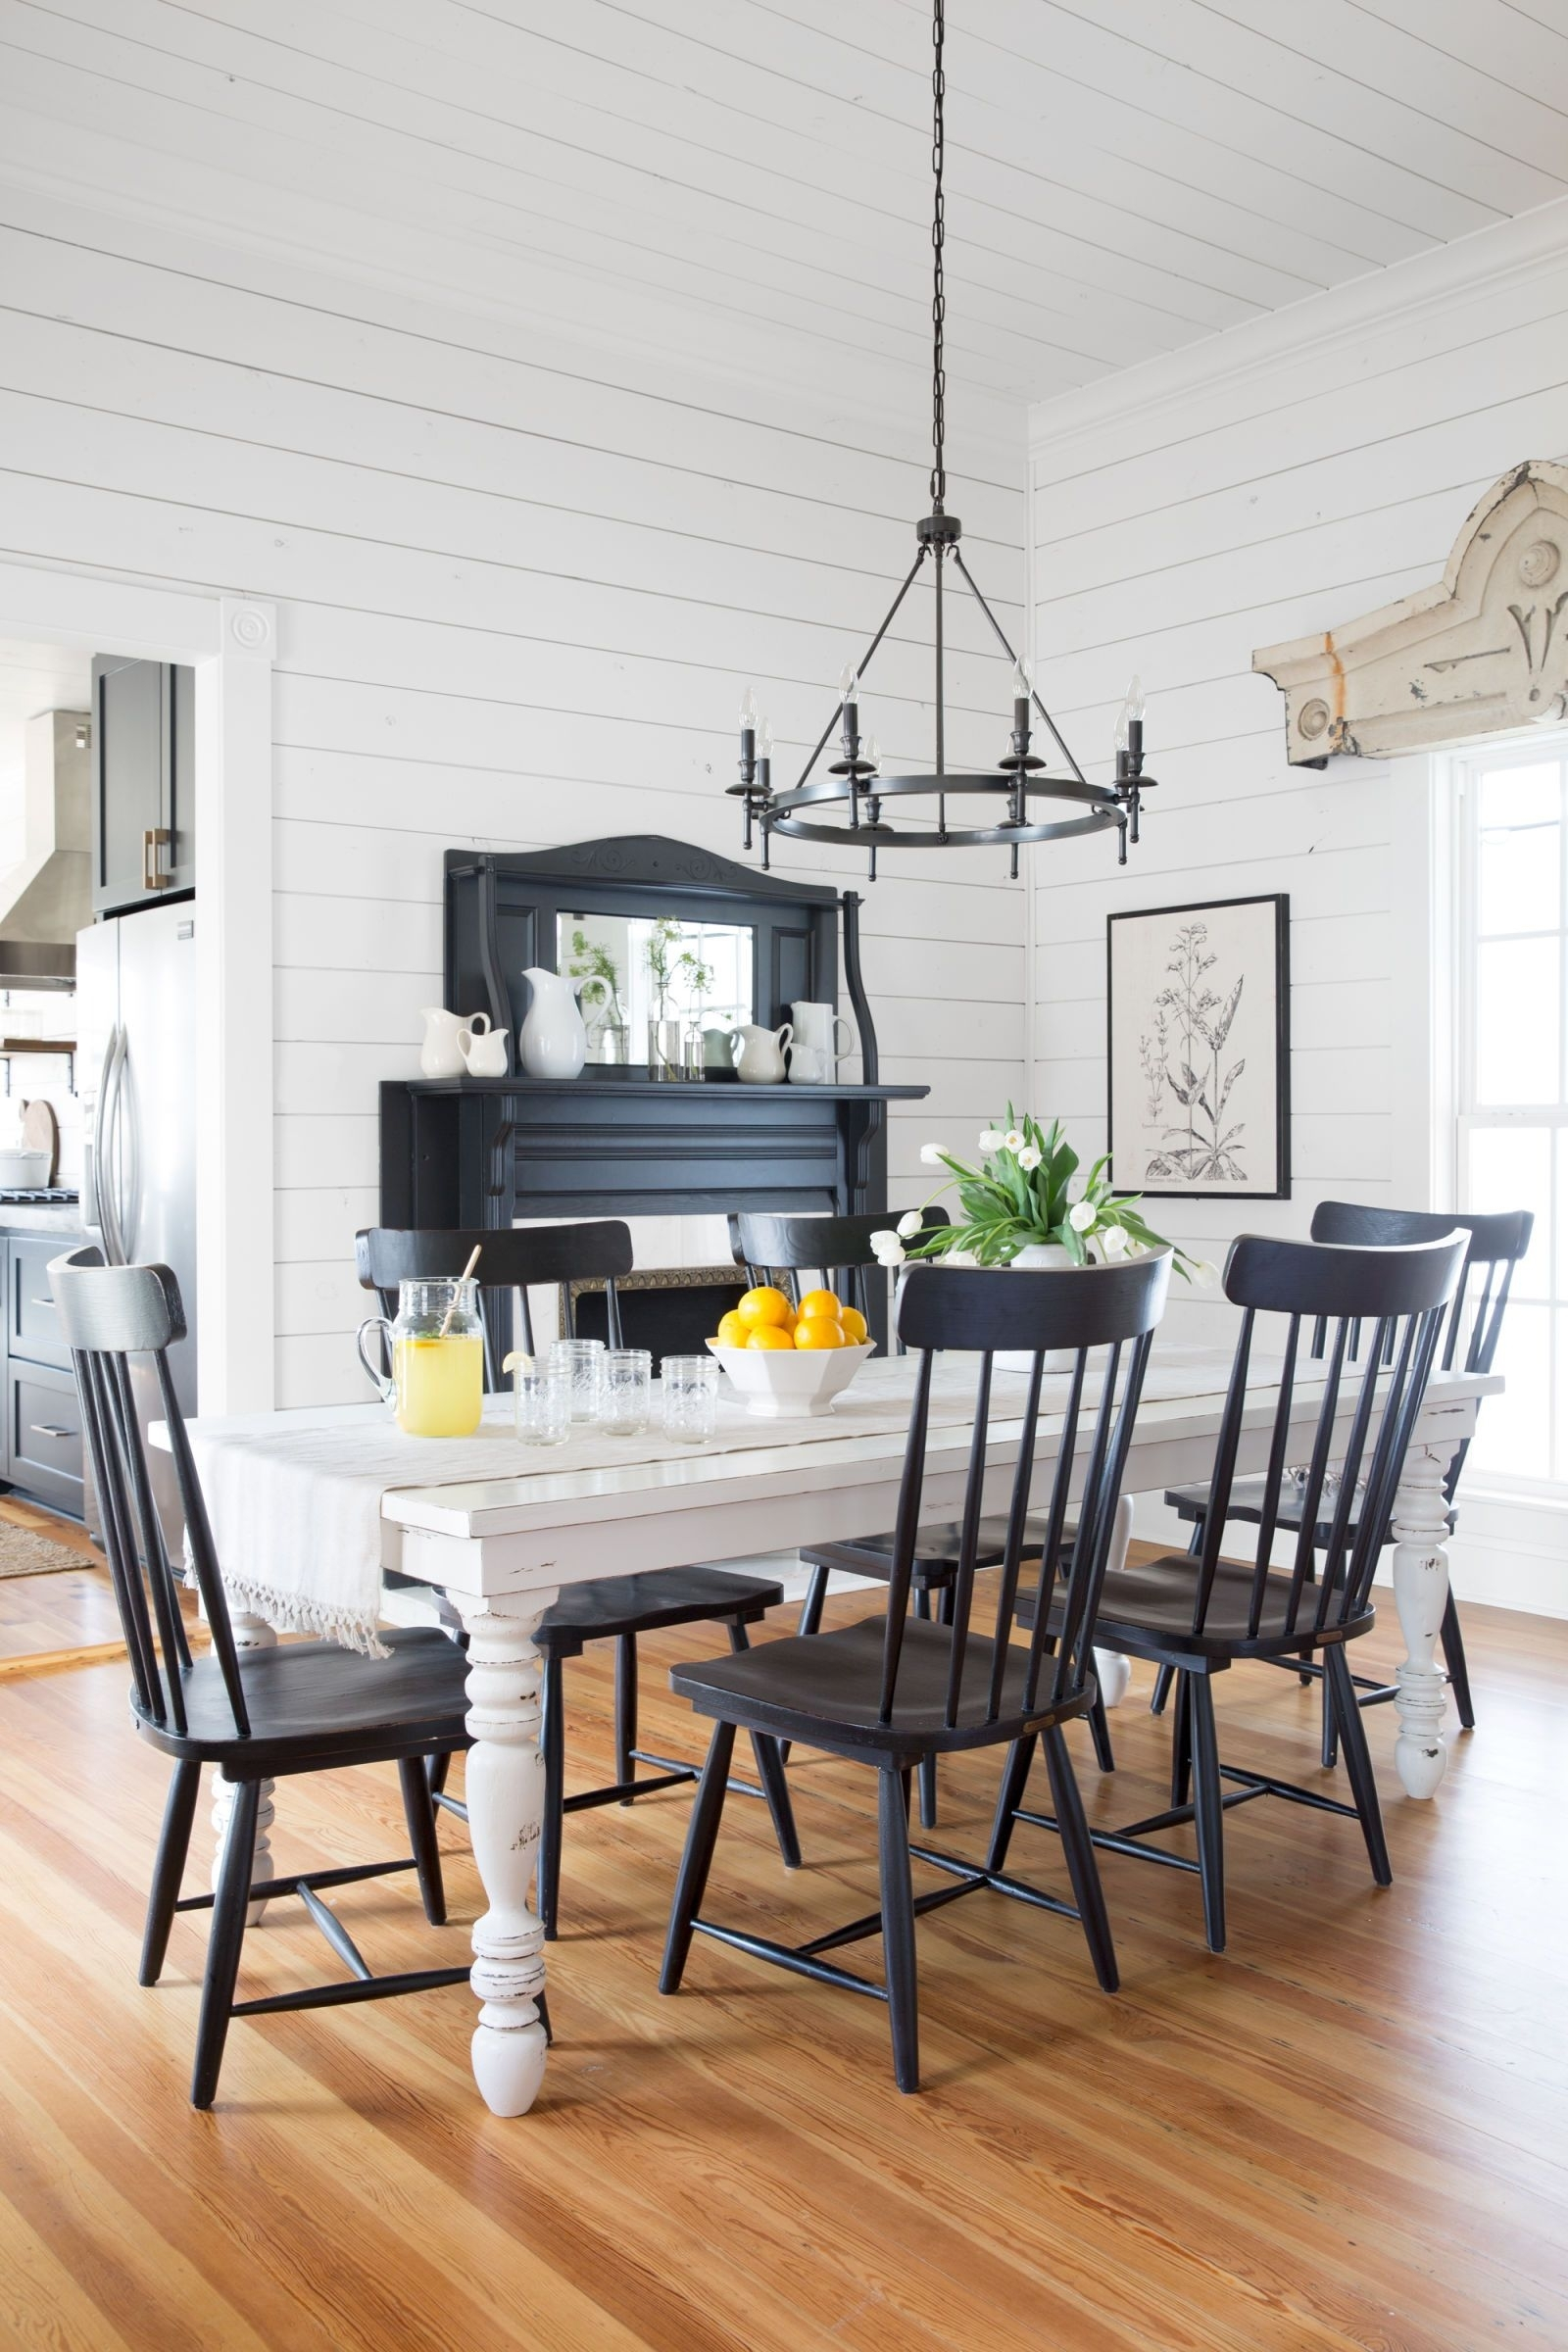 Take A Tour Of Chip And Joanna Gaines' Magnolia House B&b | Country Intended For 2018 Magnolia Home Breakfast Round Black Dining Tables (View 11 of 20)